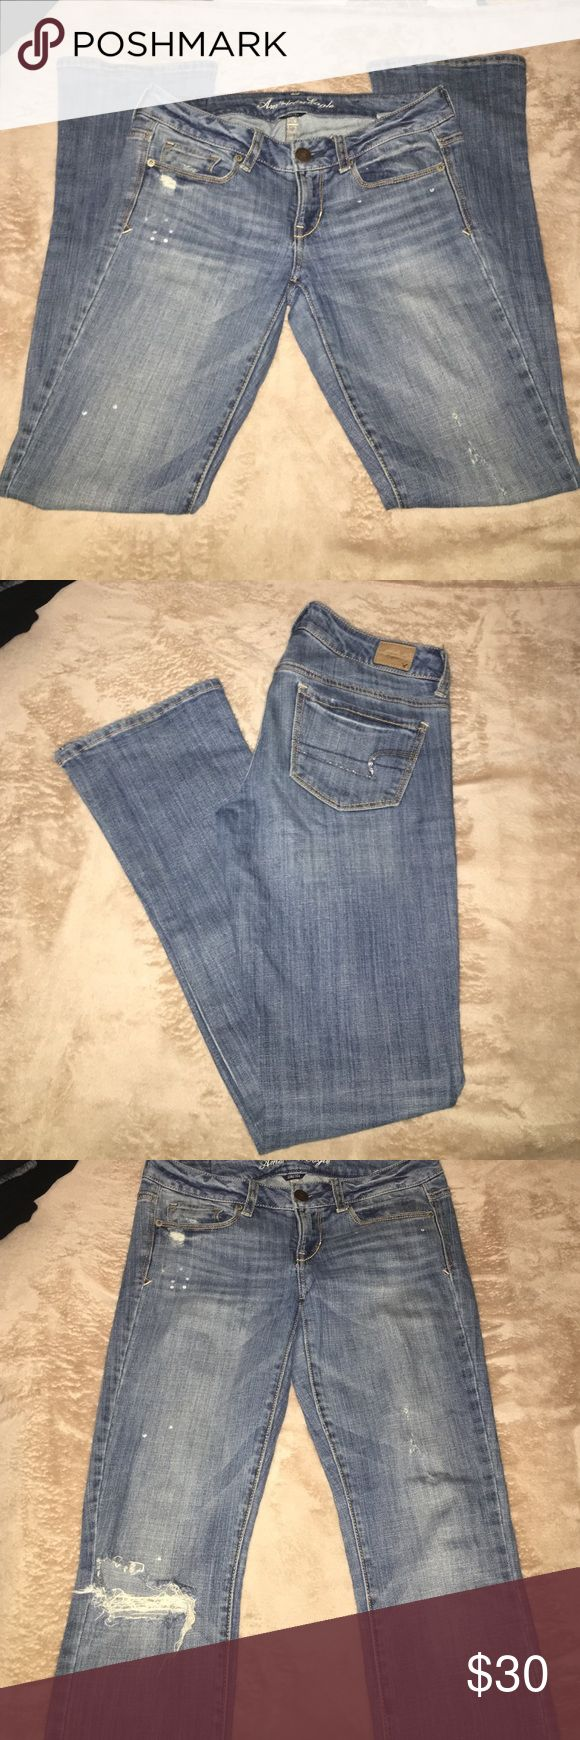 American Eagle Skinny Kick Distressed jeans True to size, they came distressed at the knee. The back pockets have cute sequin details along the American eagle back pocket logo. They don't fit anymore so I can't model, but these jeans rock. skinny kick means they have a slight boot cut to them but are looser around the ankles. American Eagle Outfitters Jeans Boot Cut